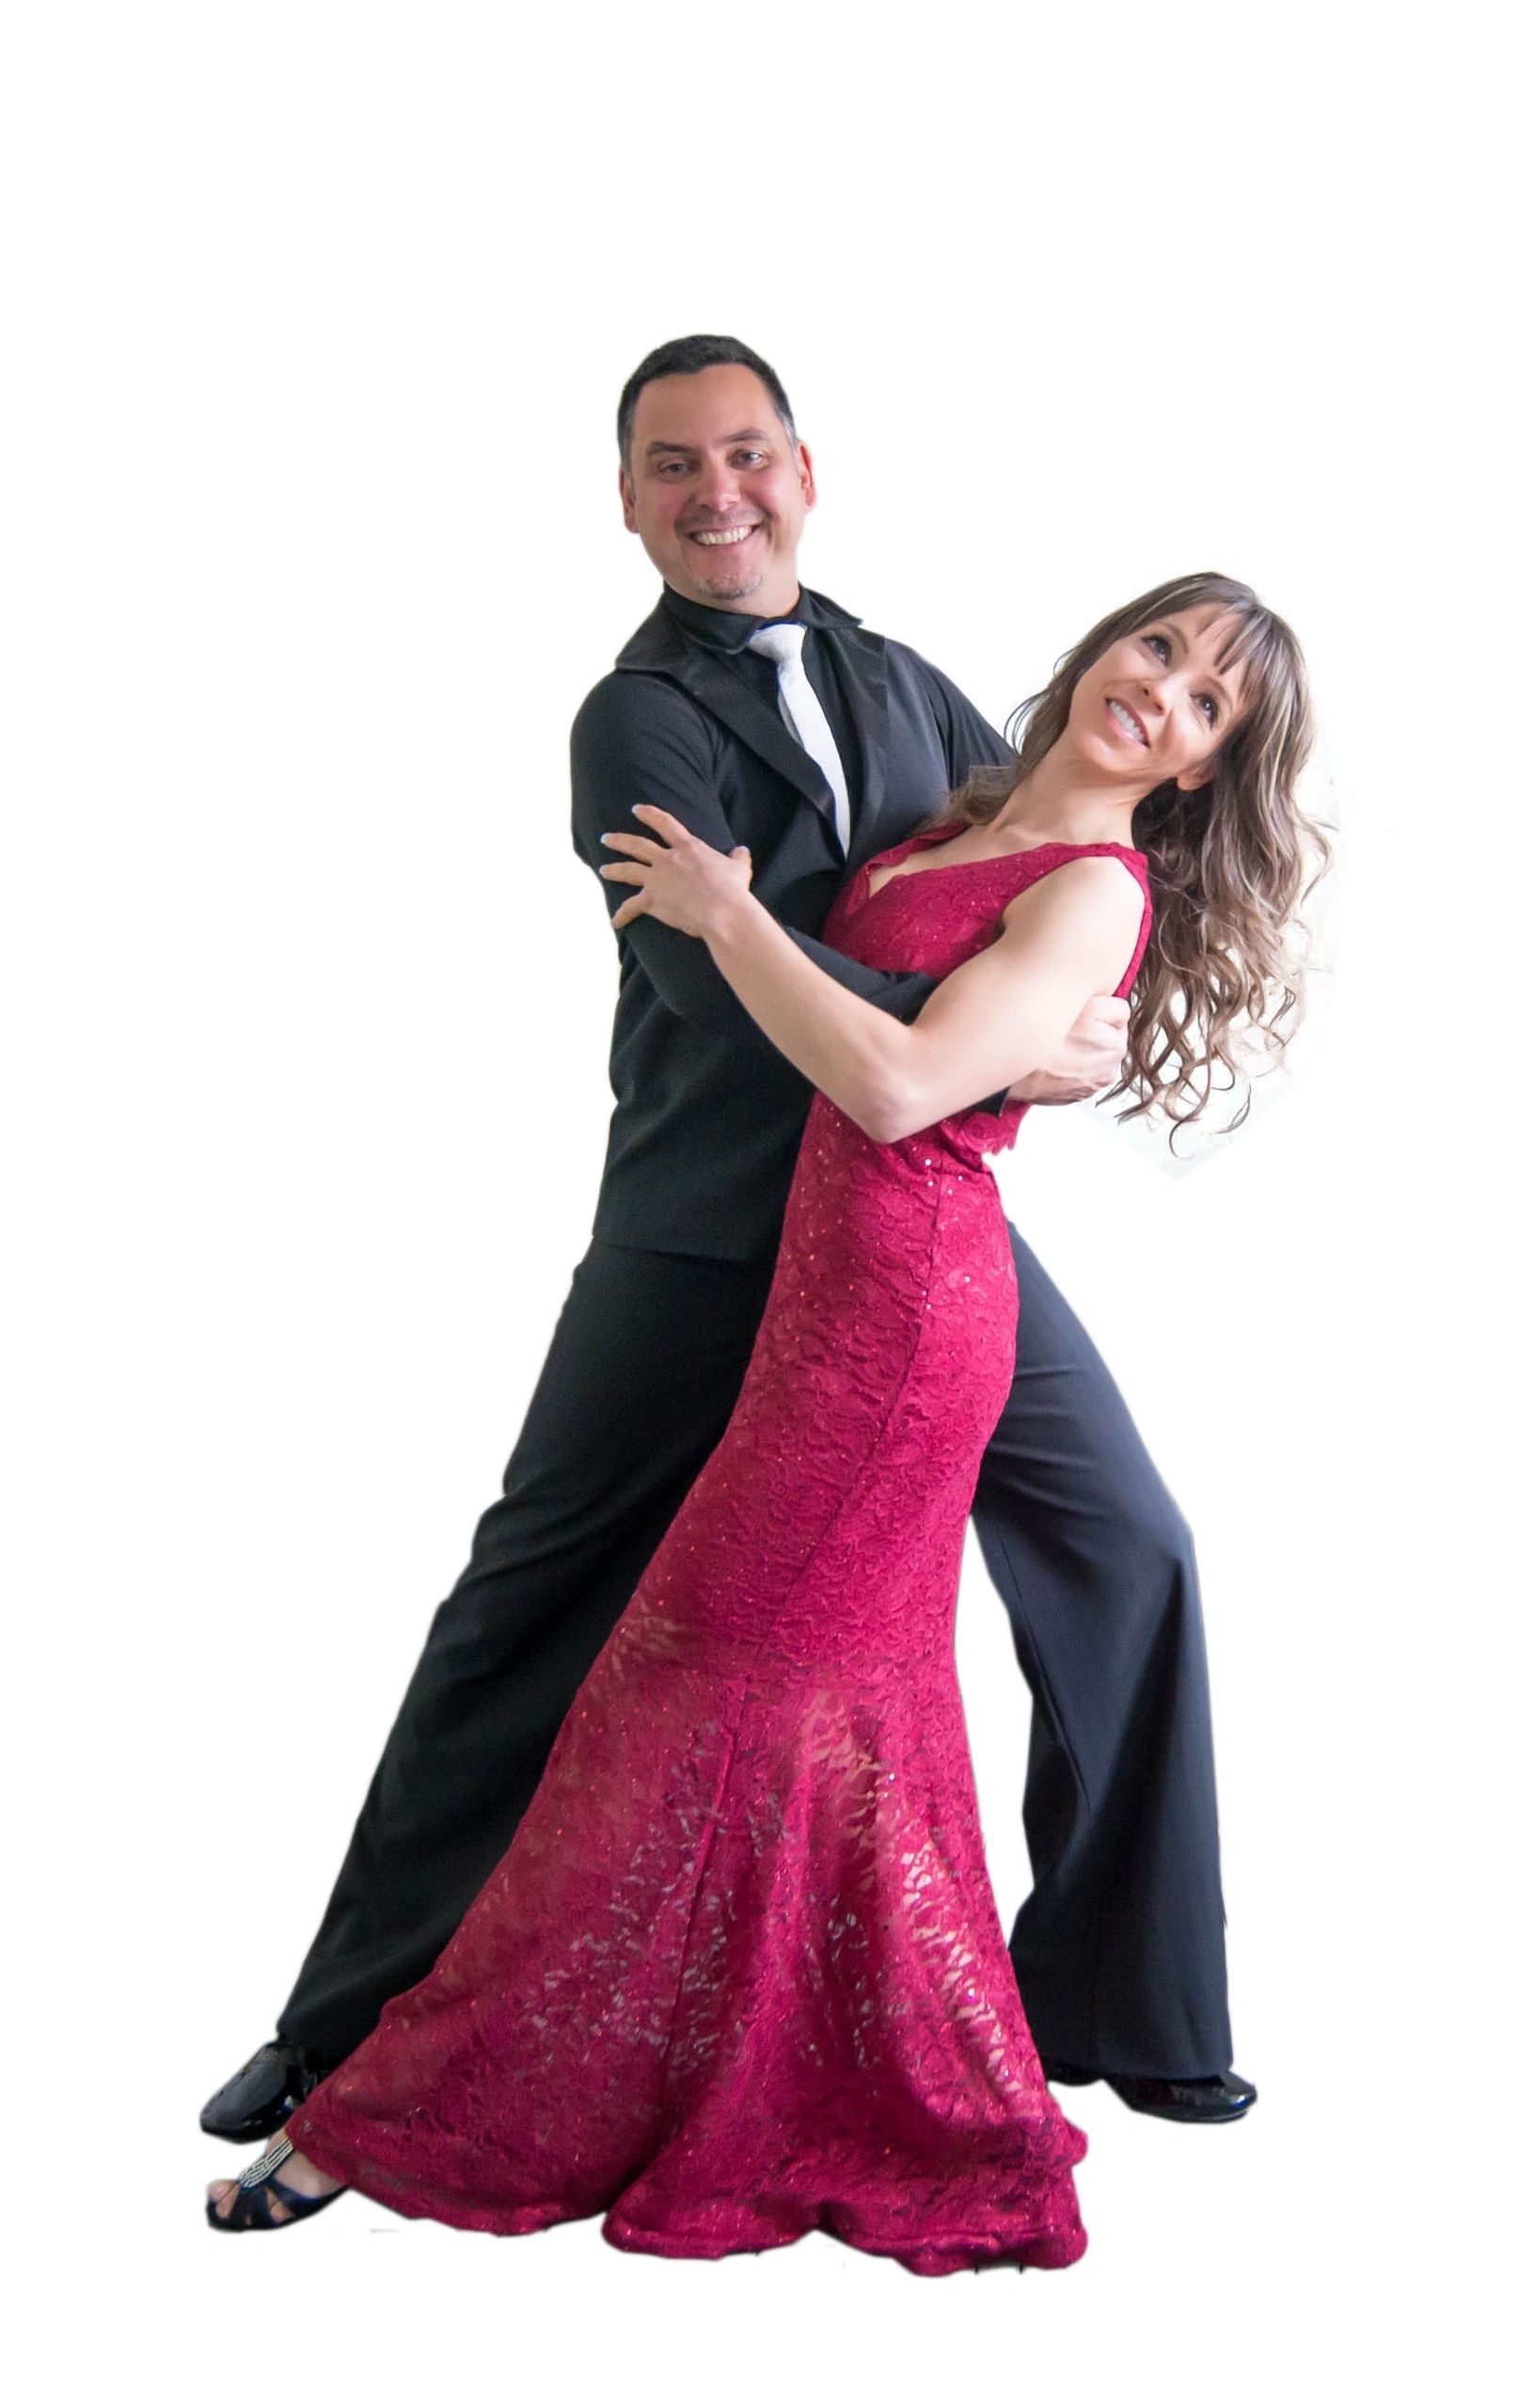 Grande Prairie dance lessons, including country dances, ballroom dances, latin dances and swing.